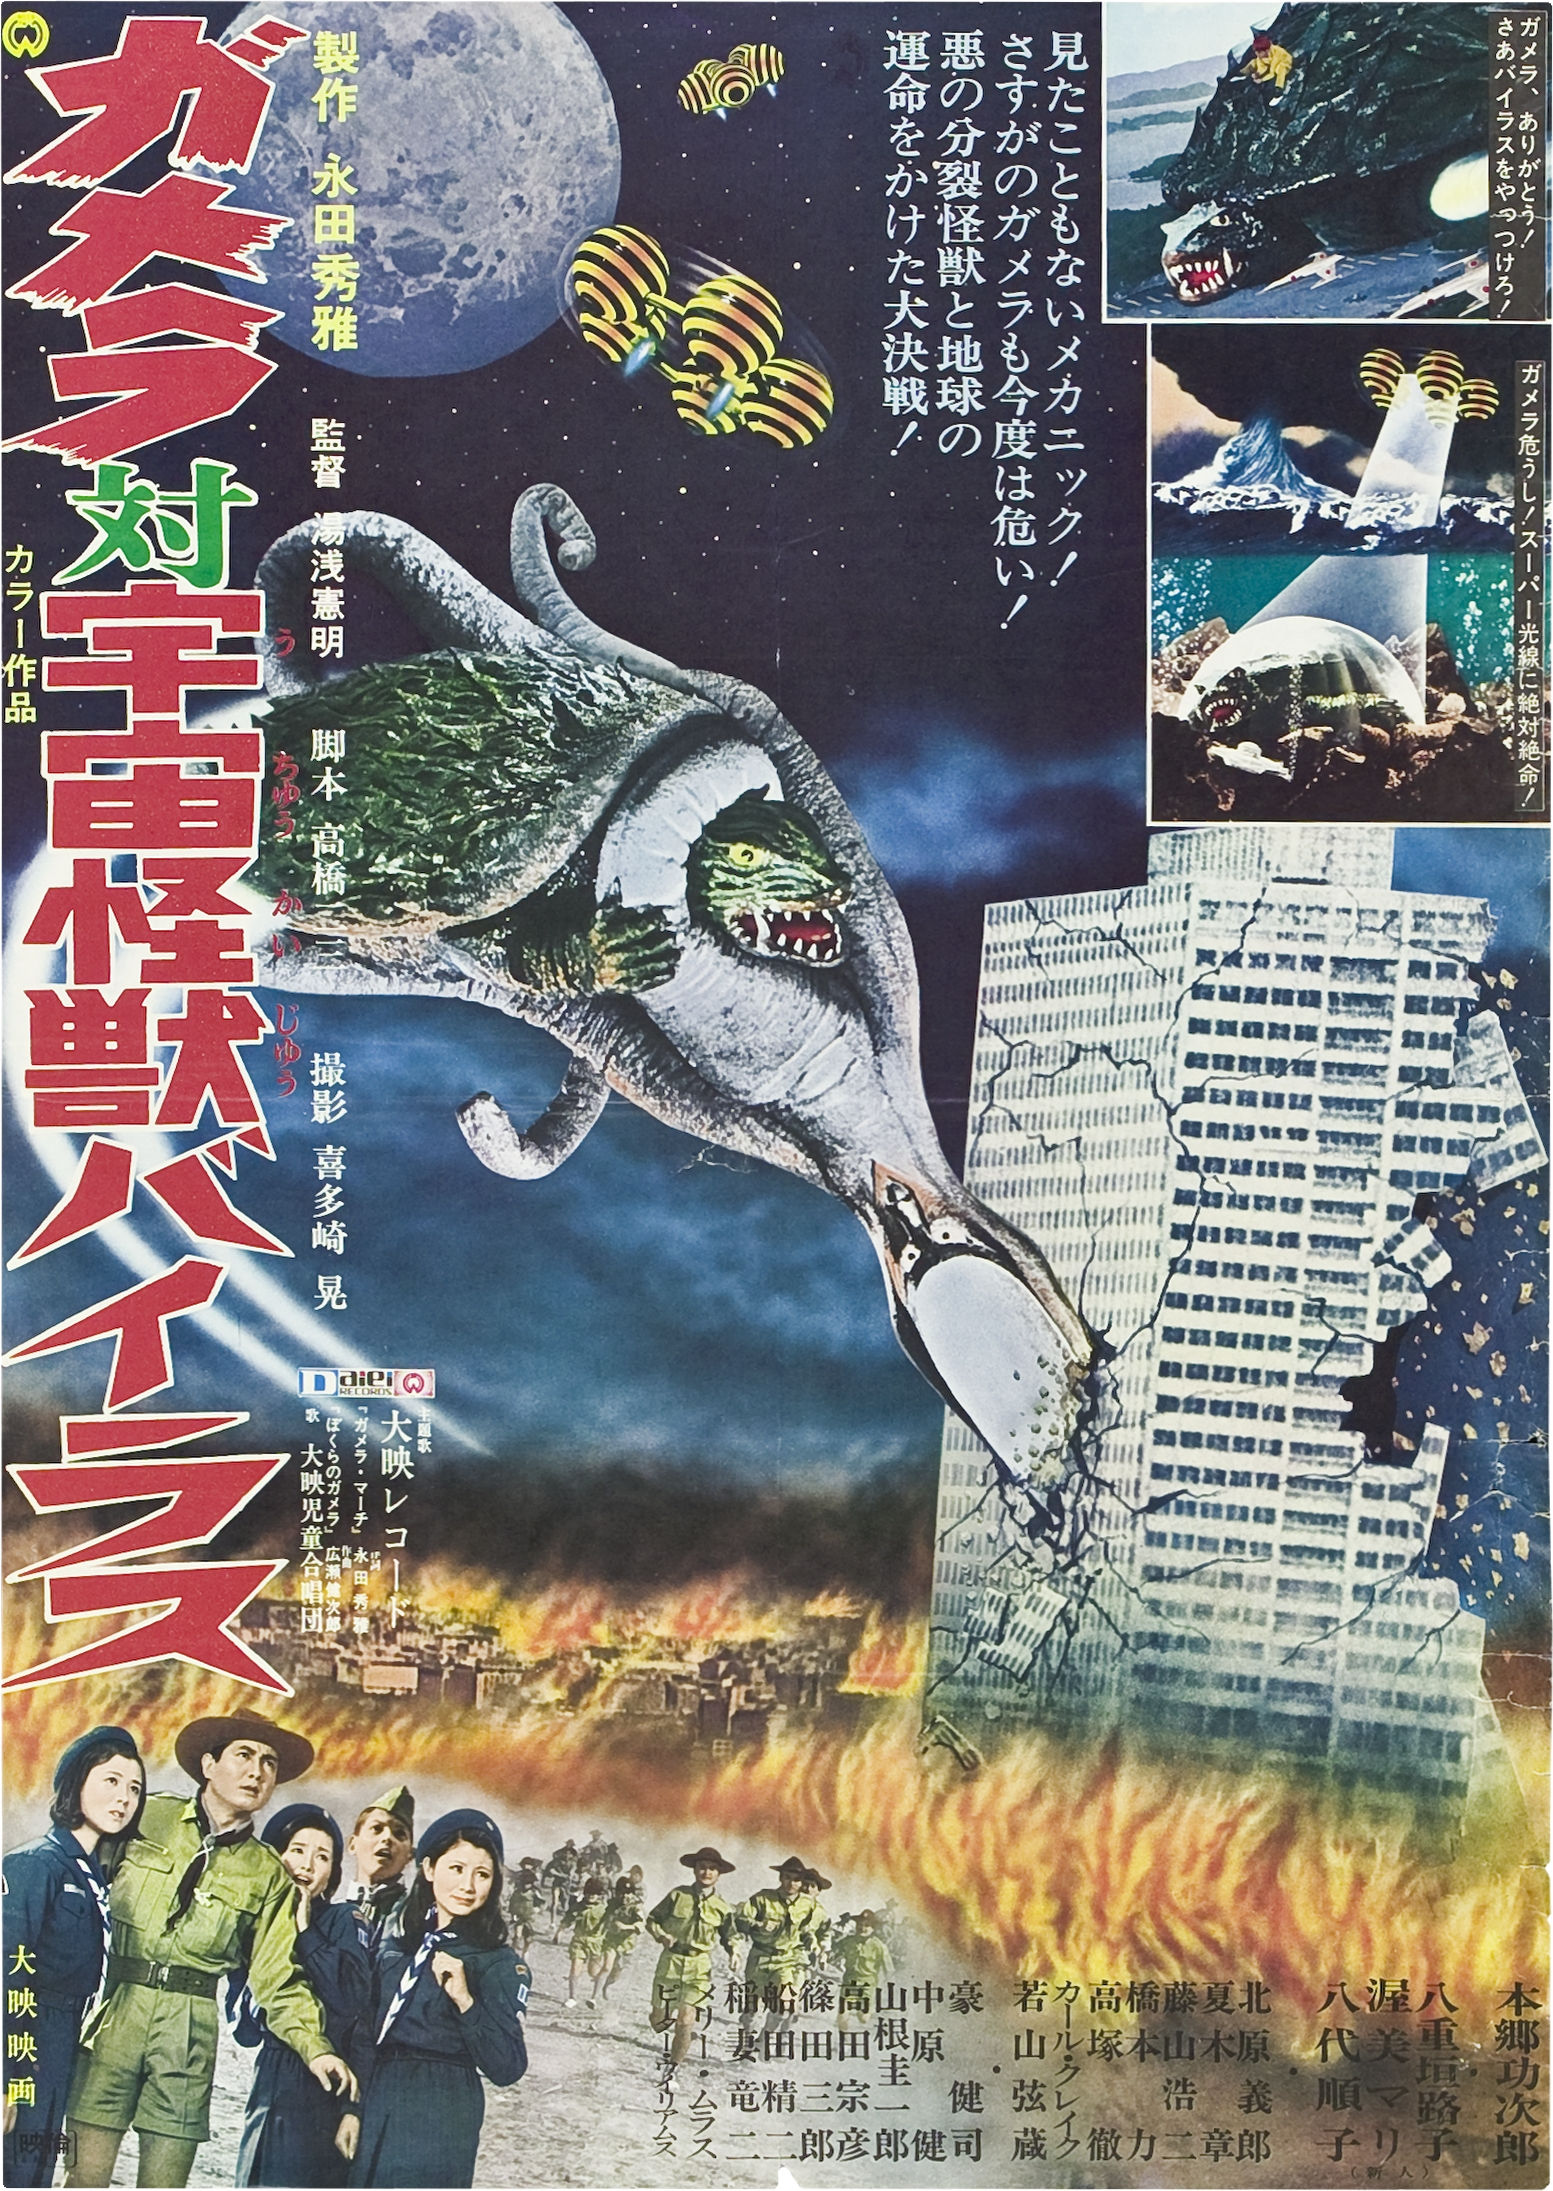 gamera_vs_viras_poster_1968_01.jpg